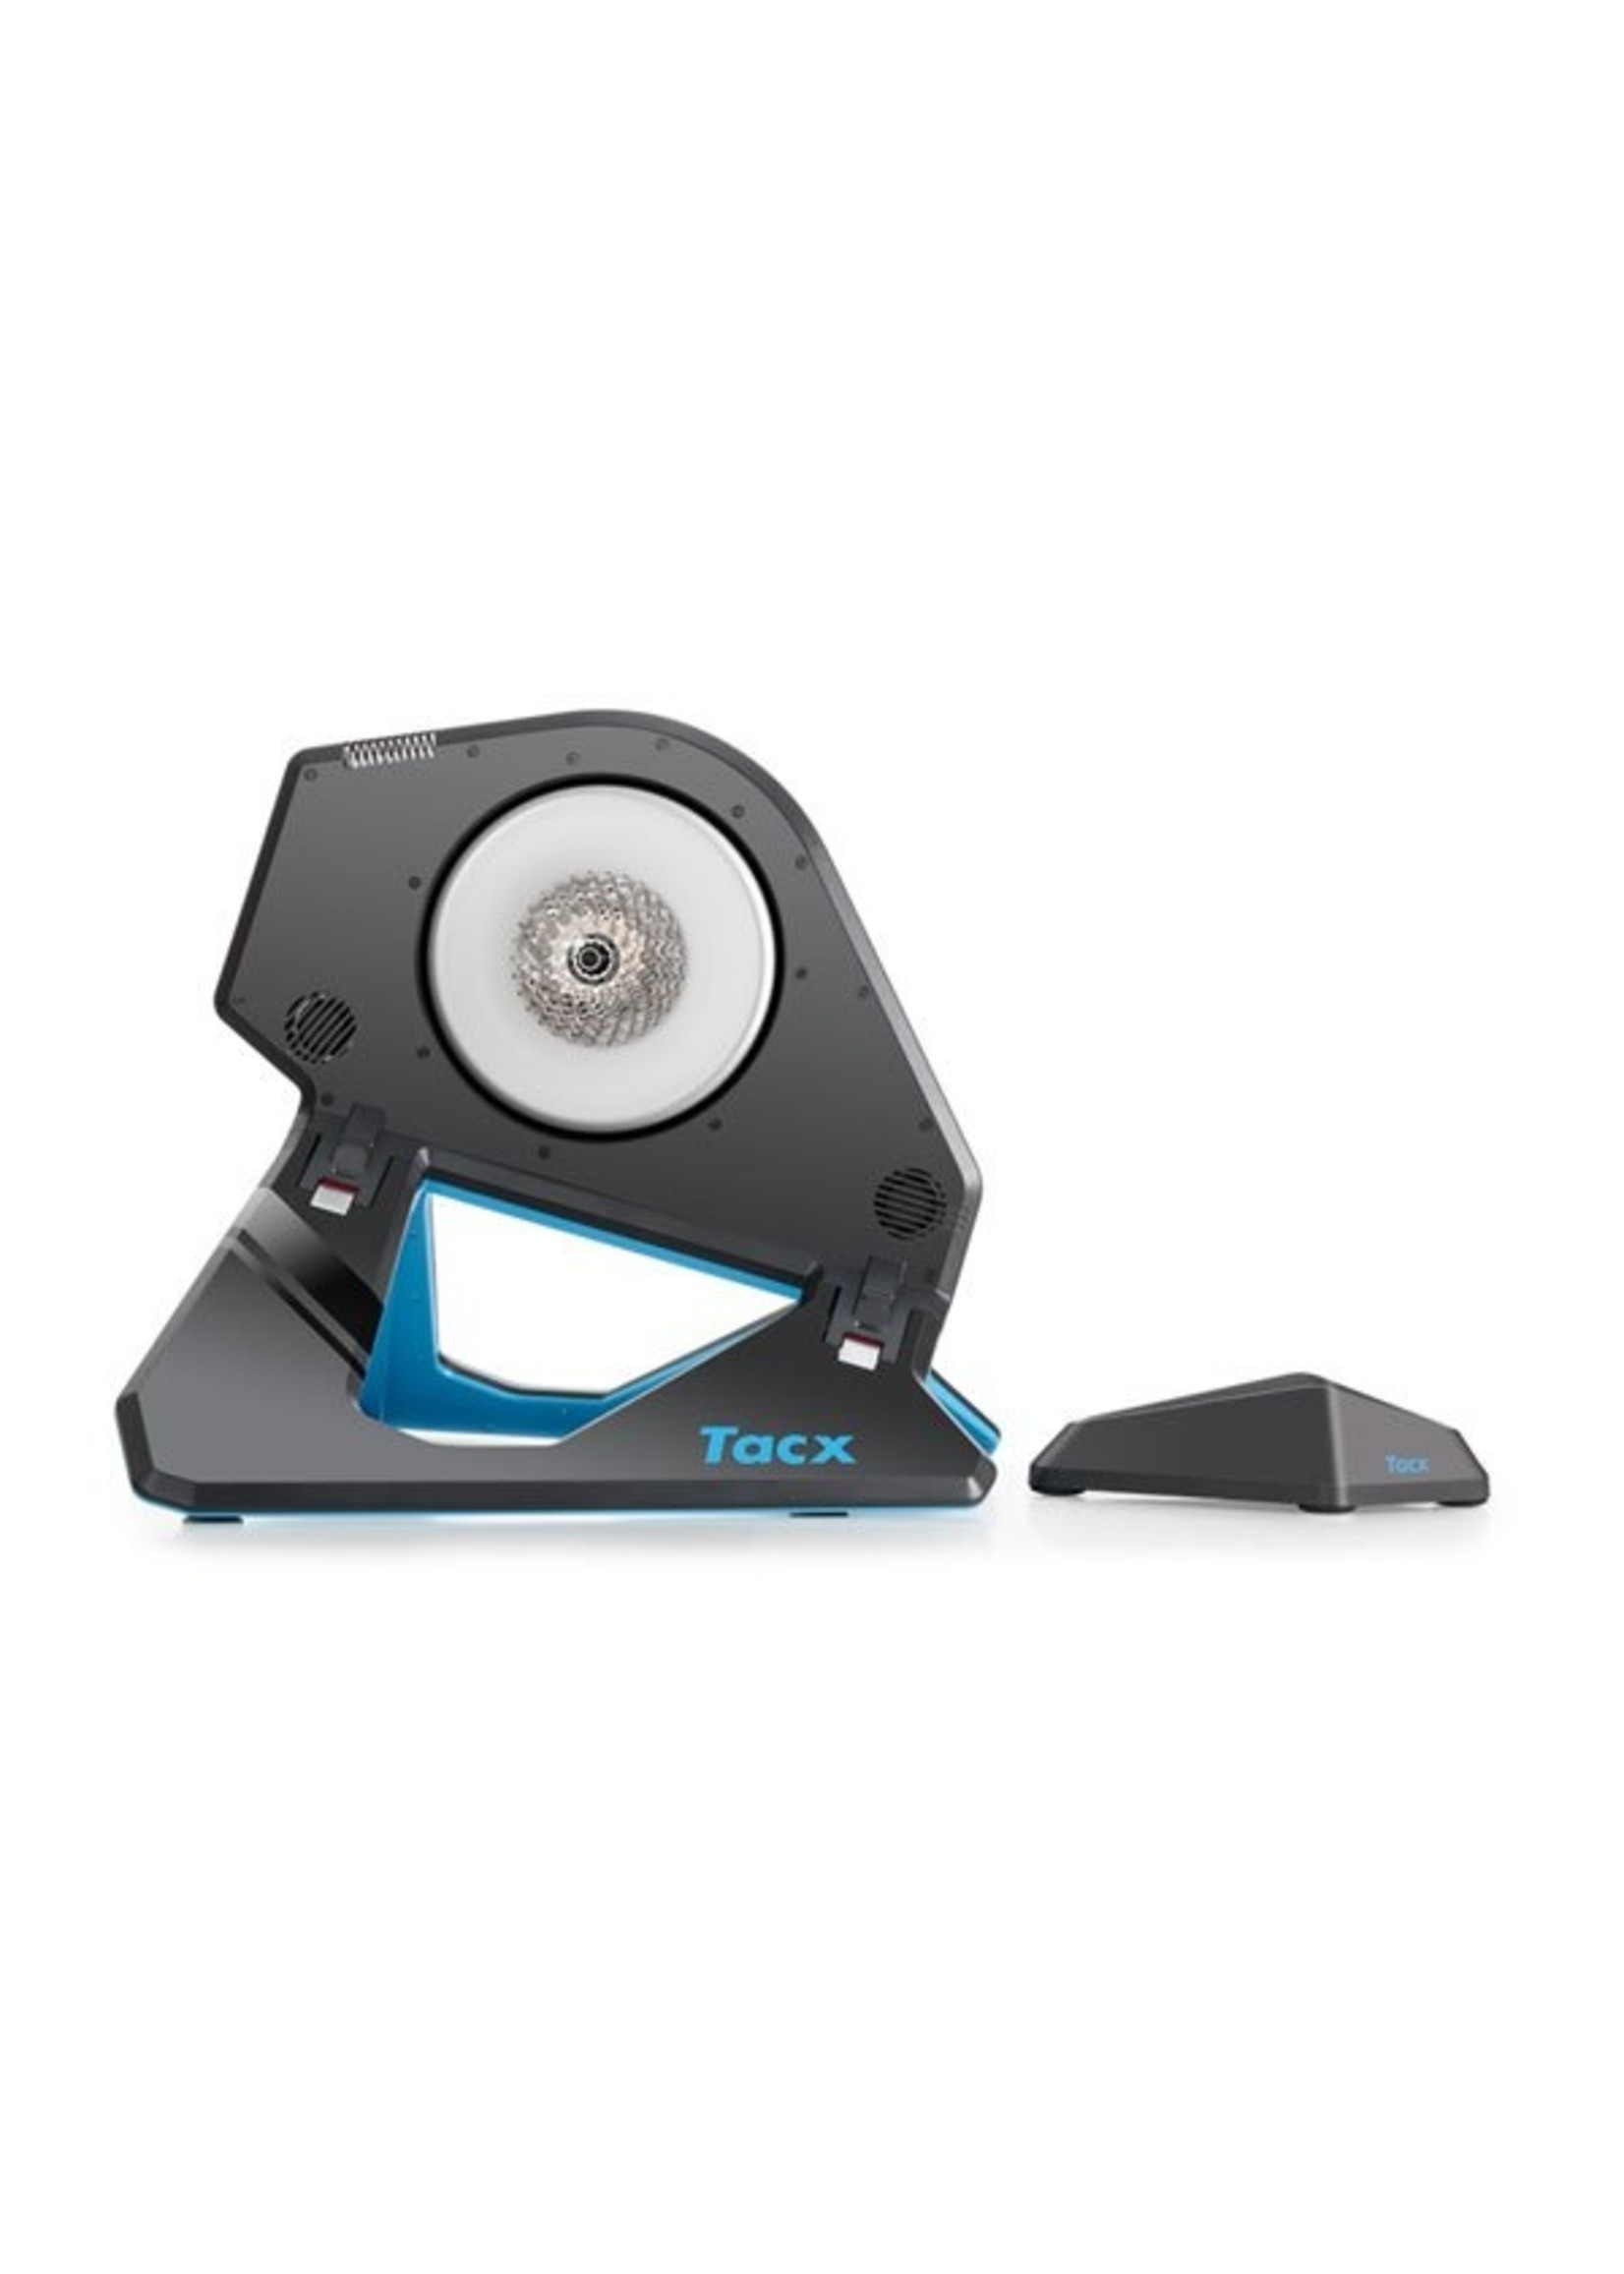 Tacx Tacx- Neo 2T Smart Trainer, Magnetic